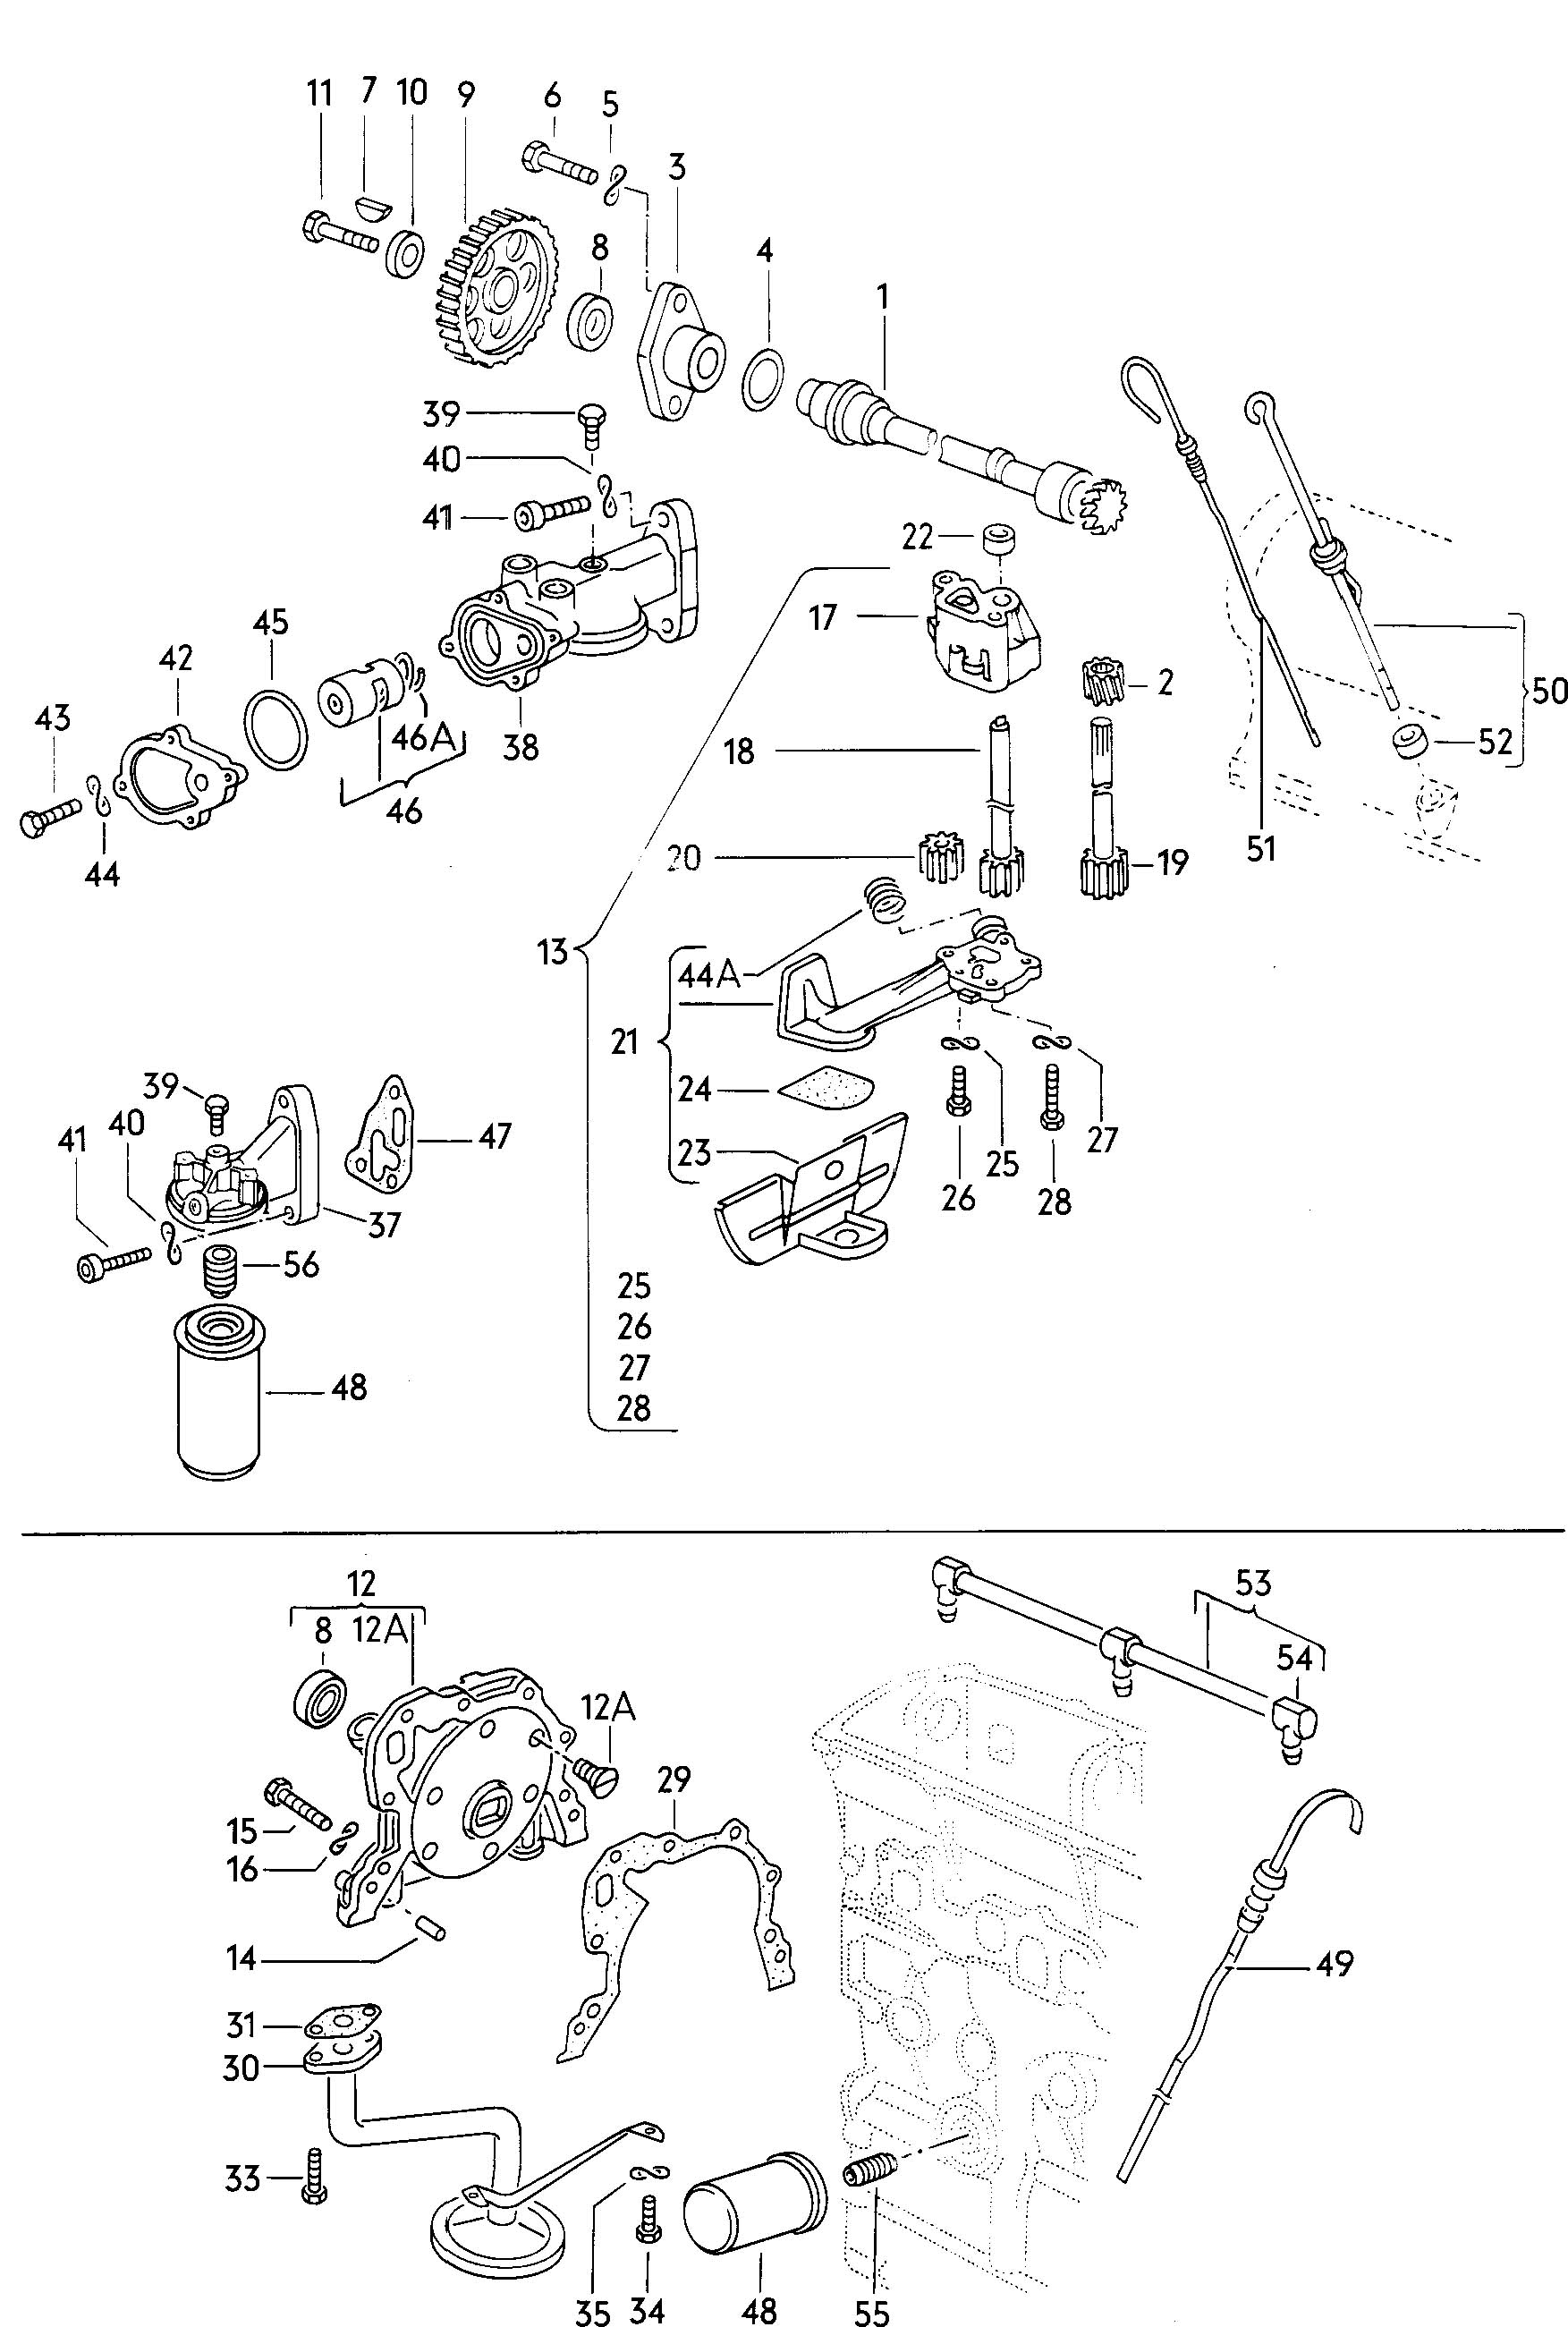 Shift Mechanism For 5 Speed Manual Transmiss